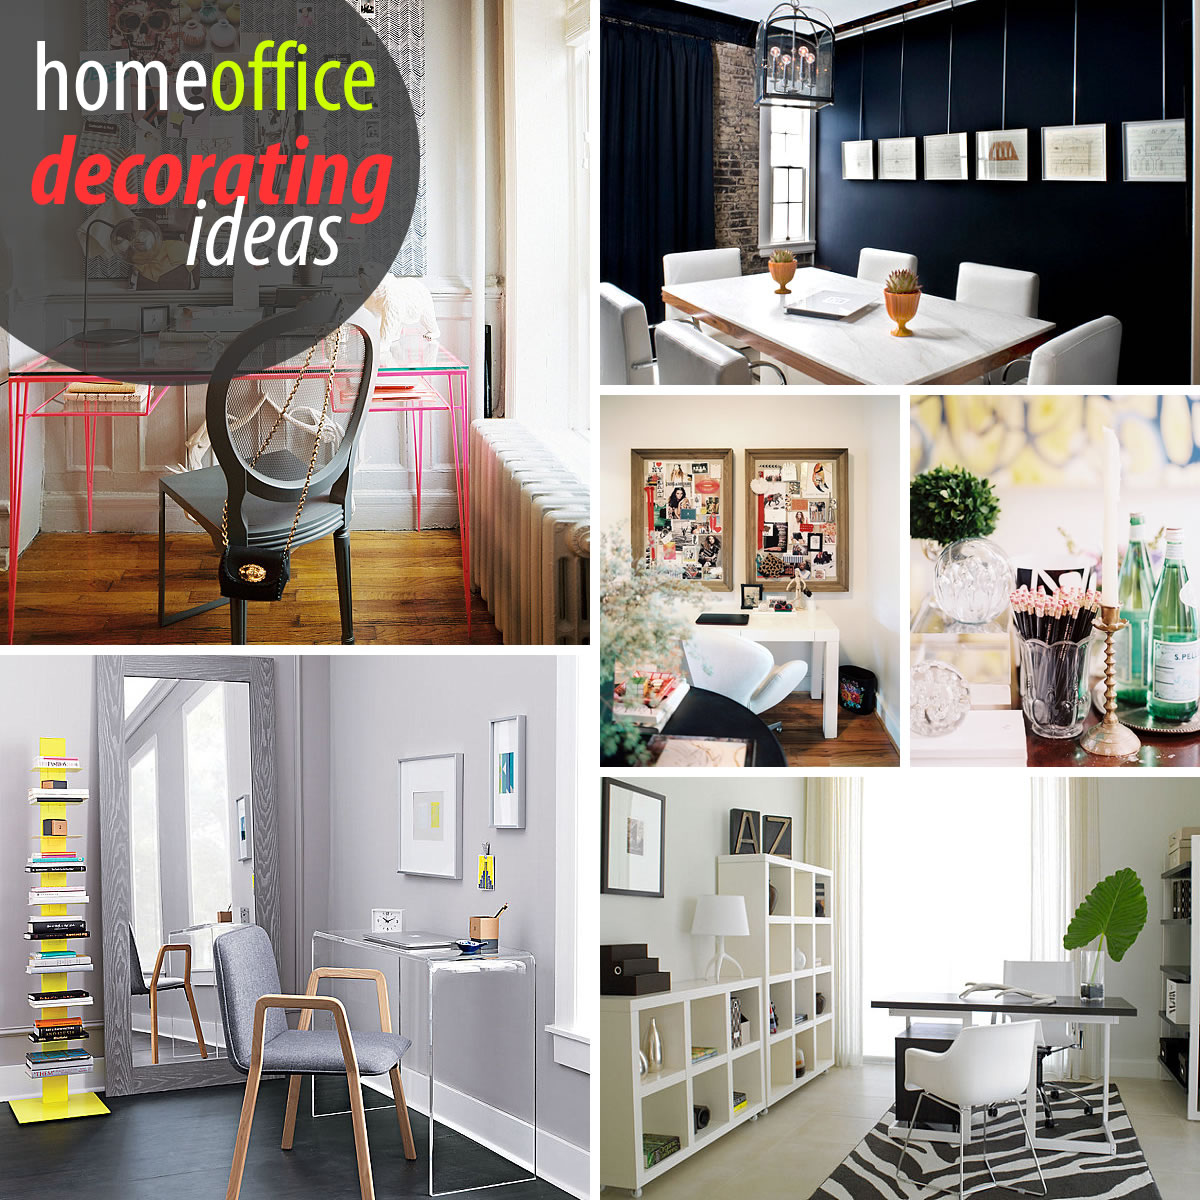 Home Office Decor Ideas creative home office decorating ideas